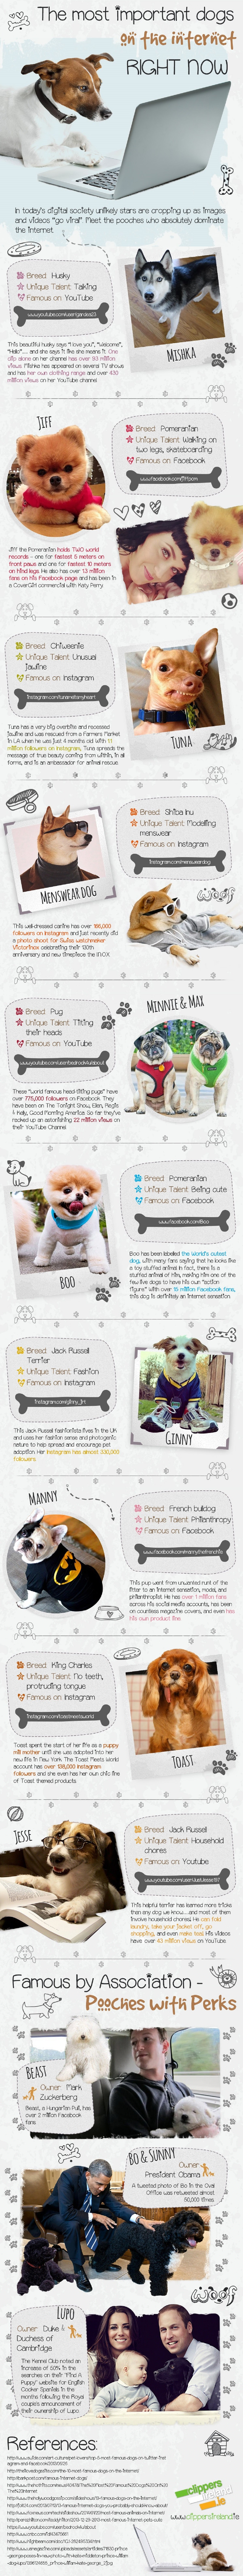 the-most-important-dogs-on-the-internet-right-now-infographic